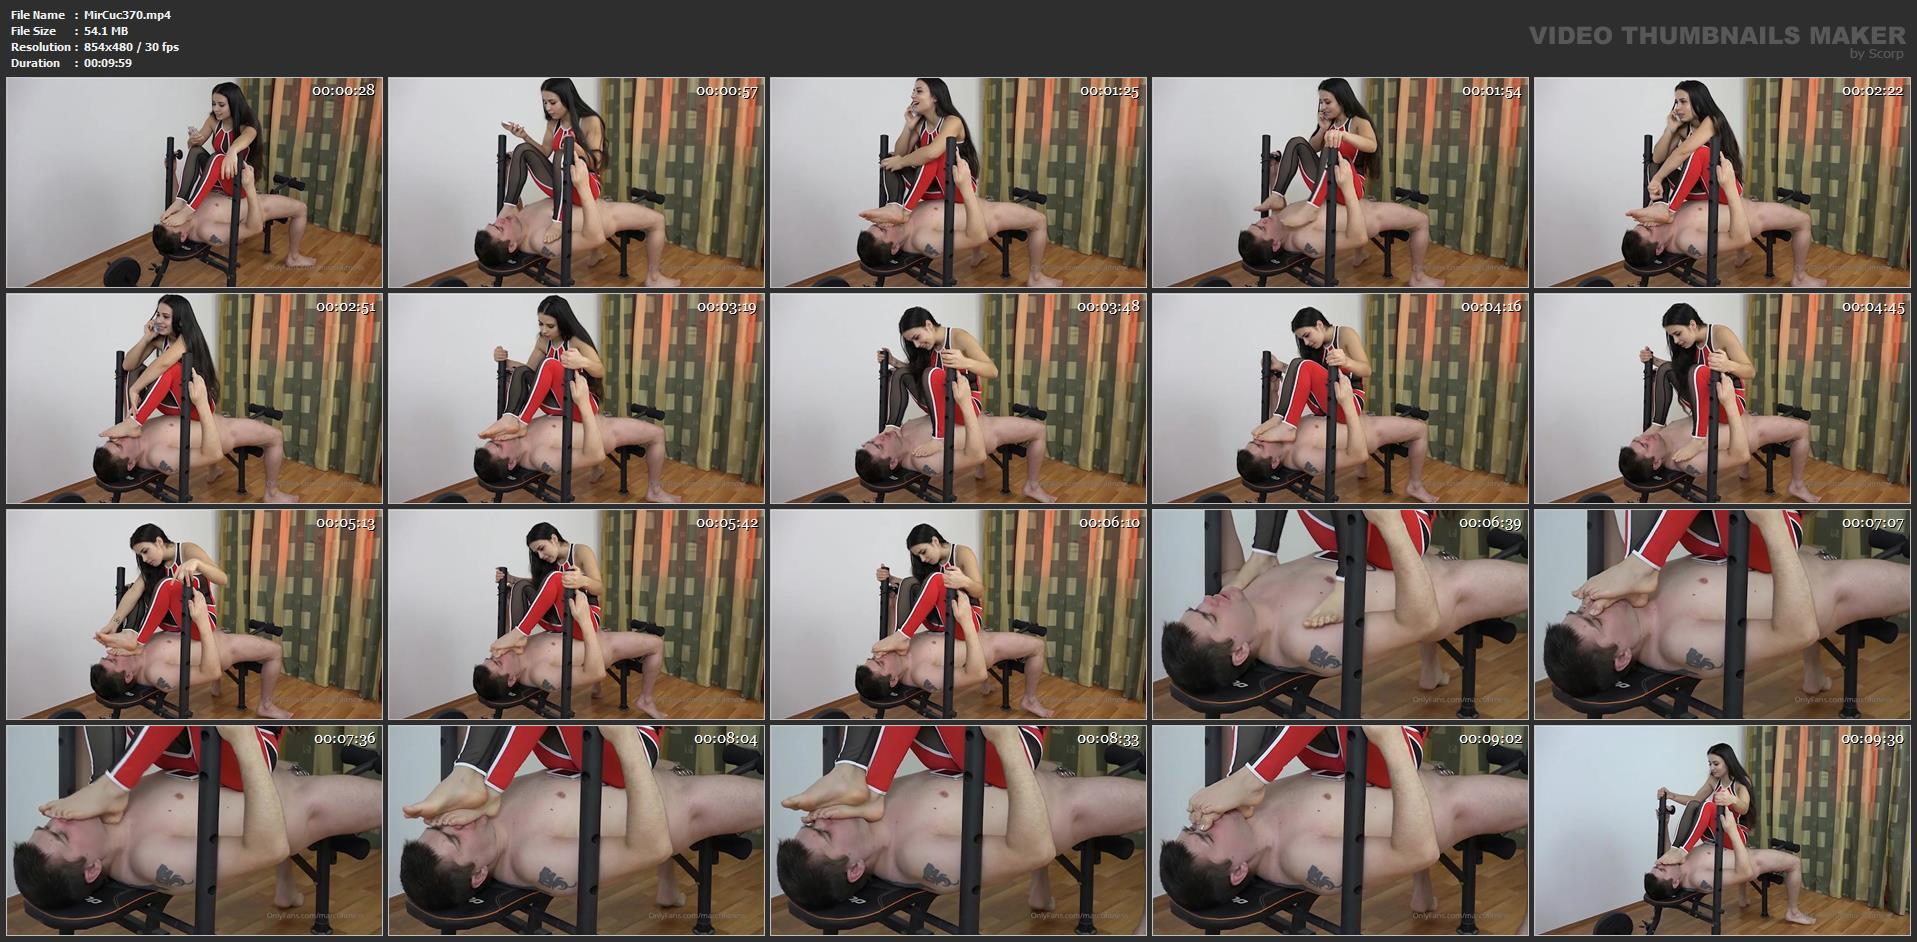 Ninel Mojado In Scene: I Show You Where Is Your Place! Chastity Cuckold Humilation! Part 2 - MIRA CUCKOLD / MAGYAR MISTRESS MIRA - SD/480p/MP4